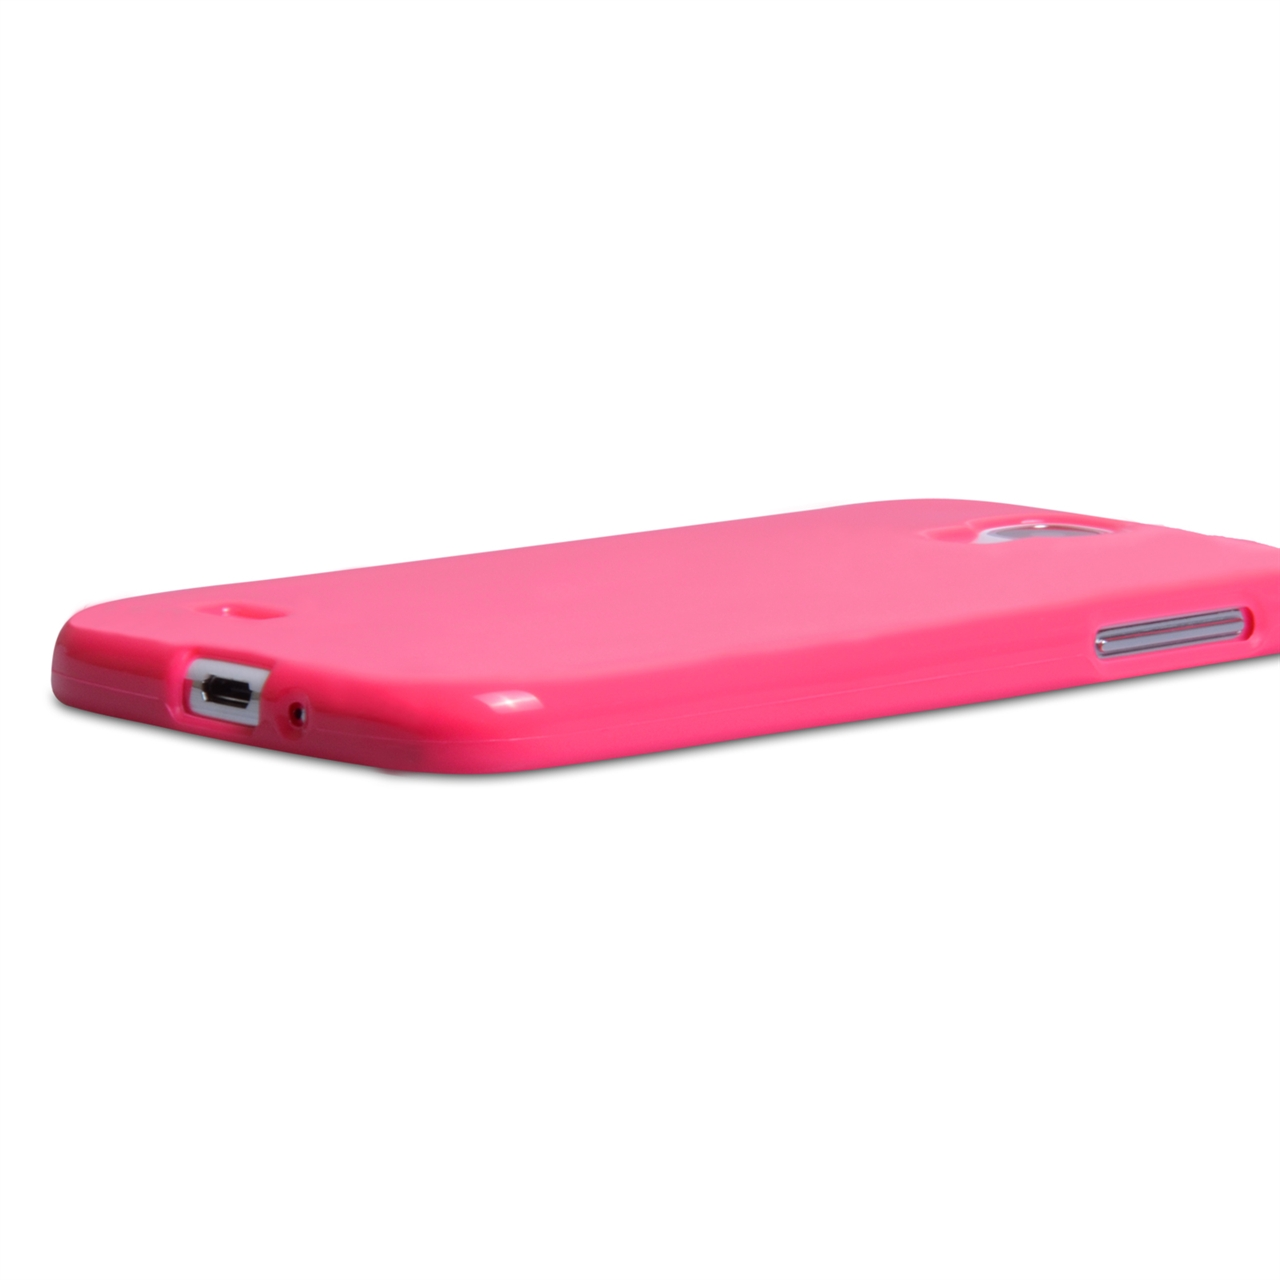 YouSave Accessories Samsung Galaxy S4 Pink Silicone Gel Case